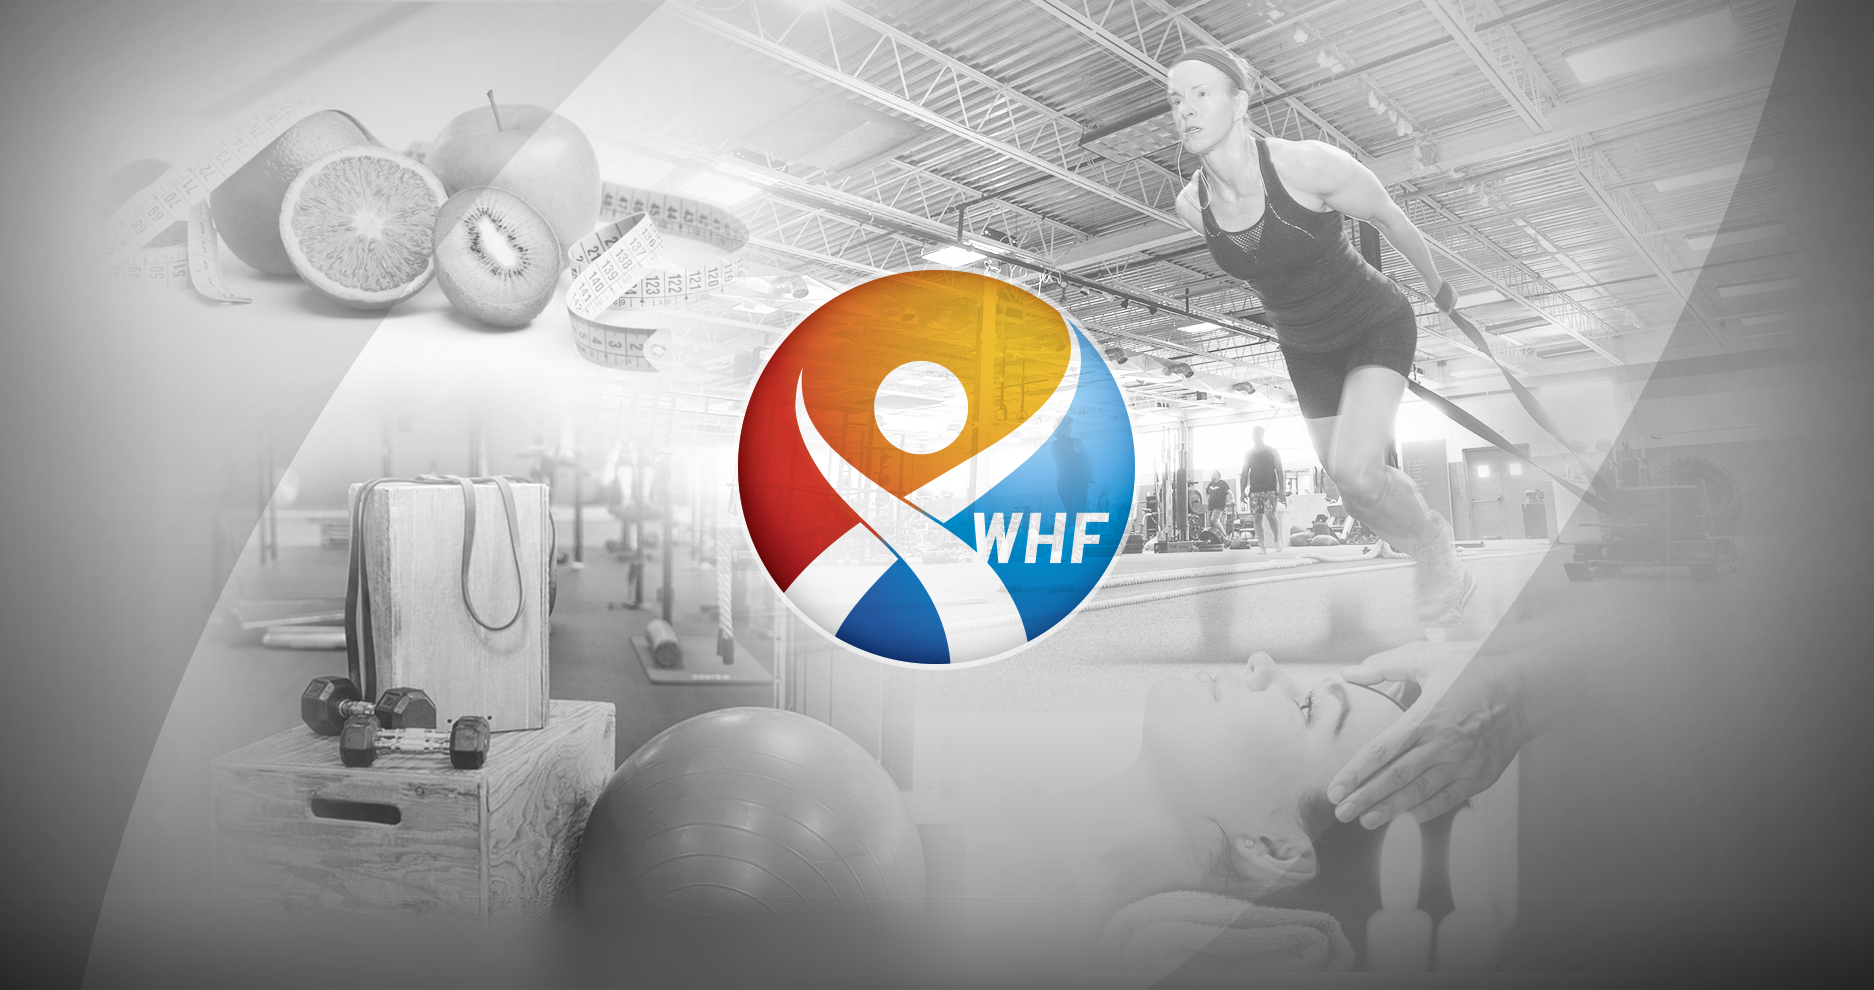 WHF - Newtown, Pa personal training, massage, nutrition, chiropractic and more